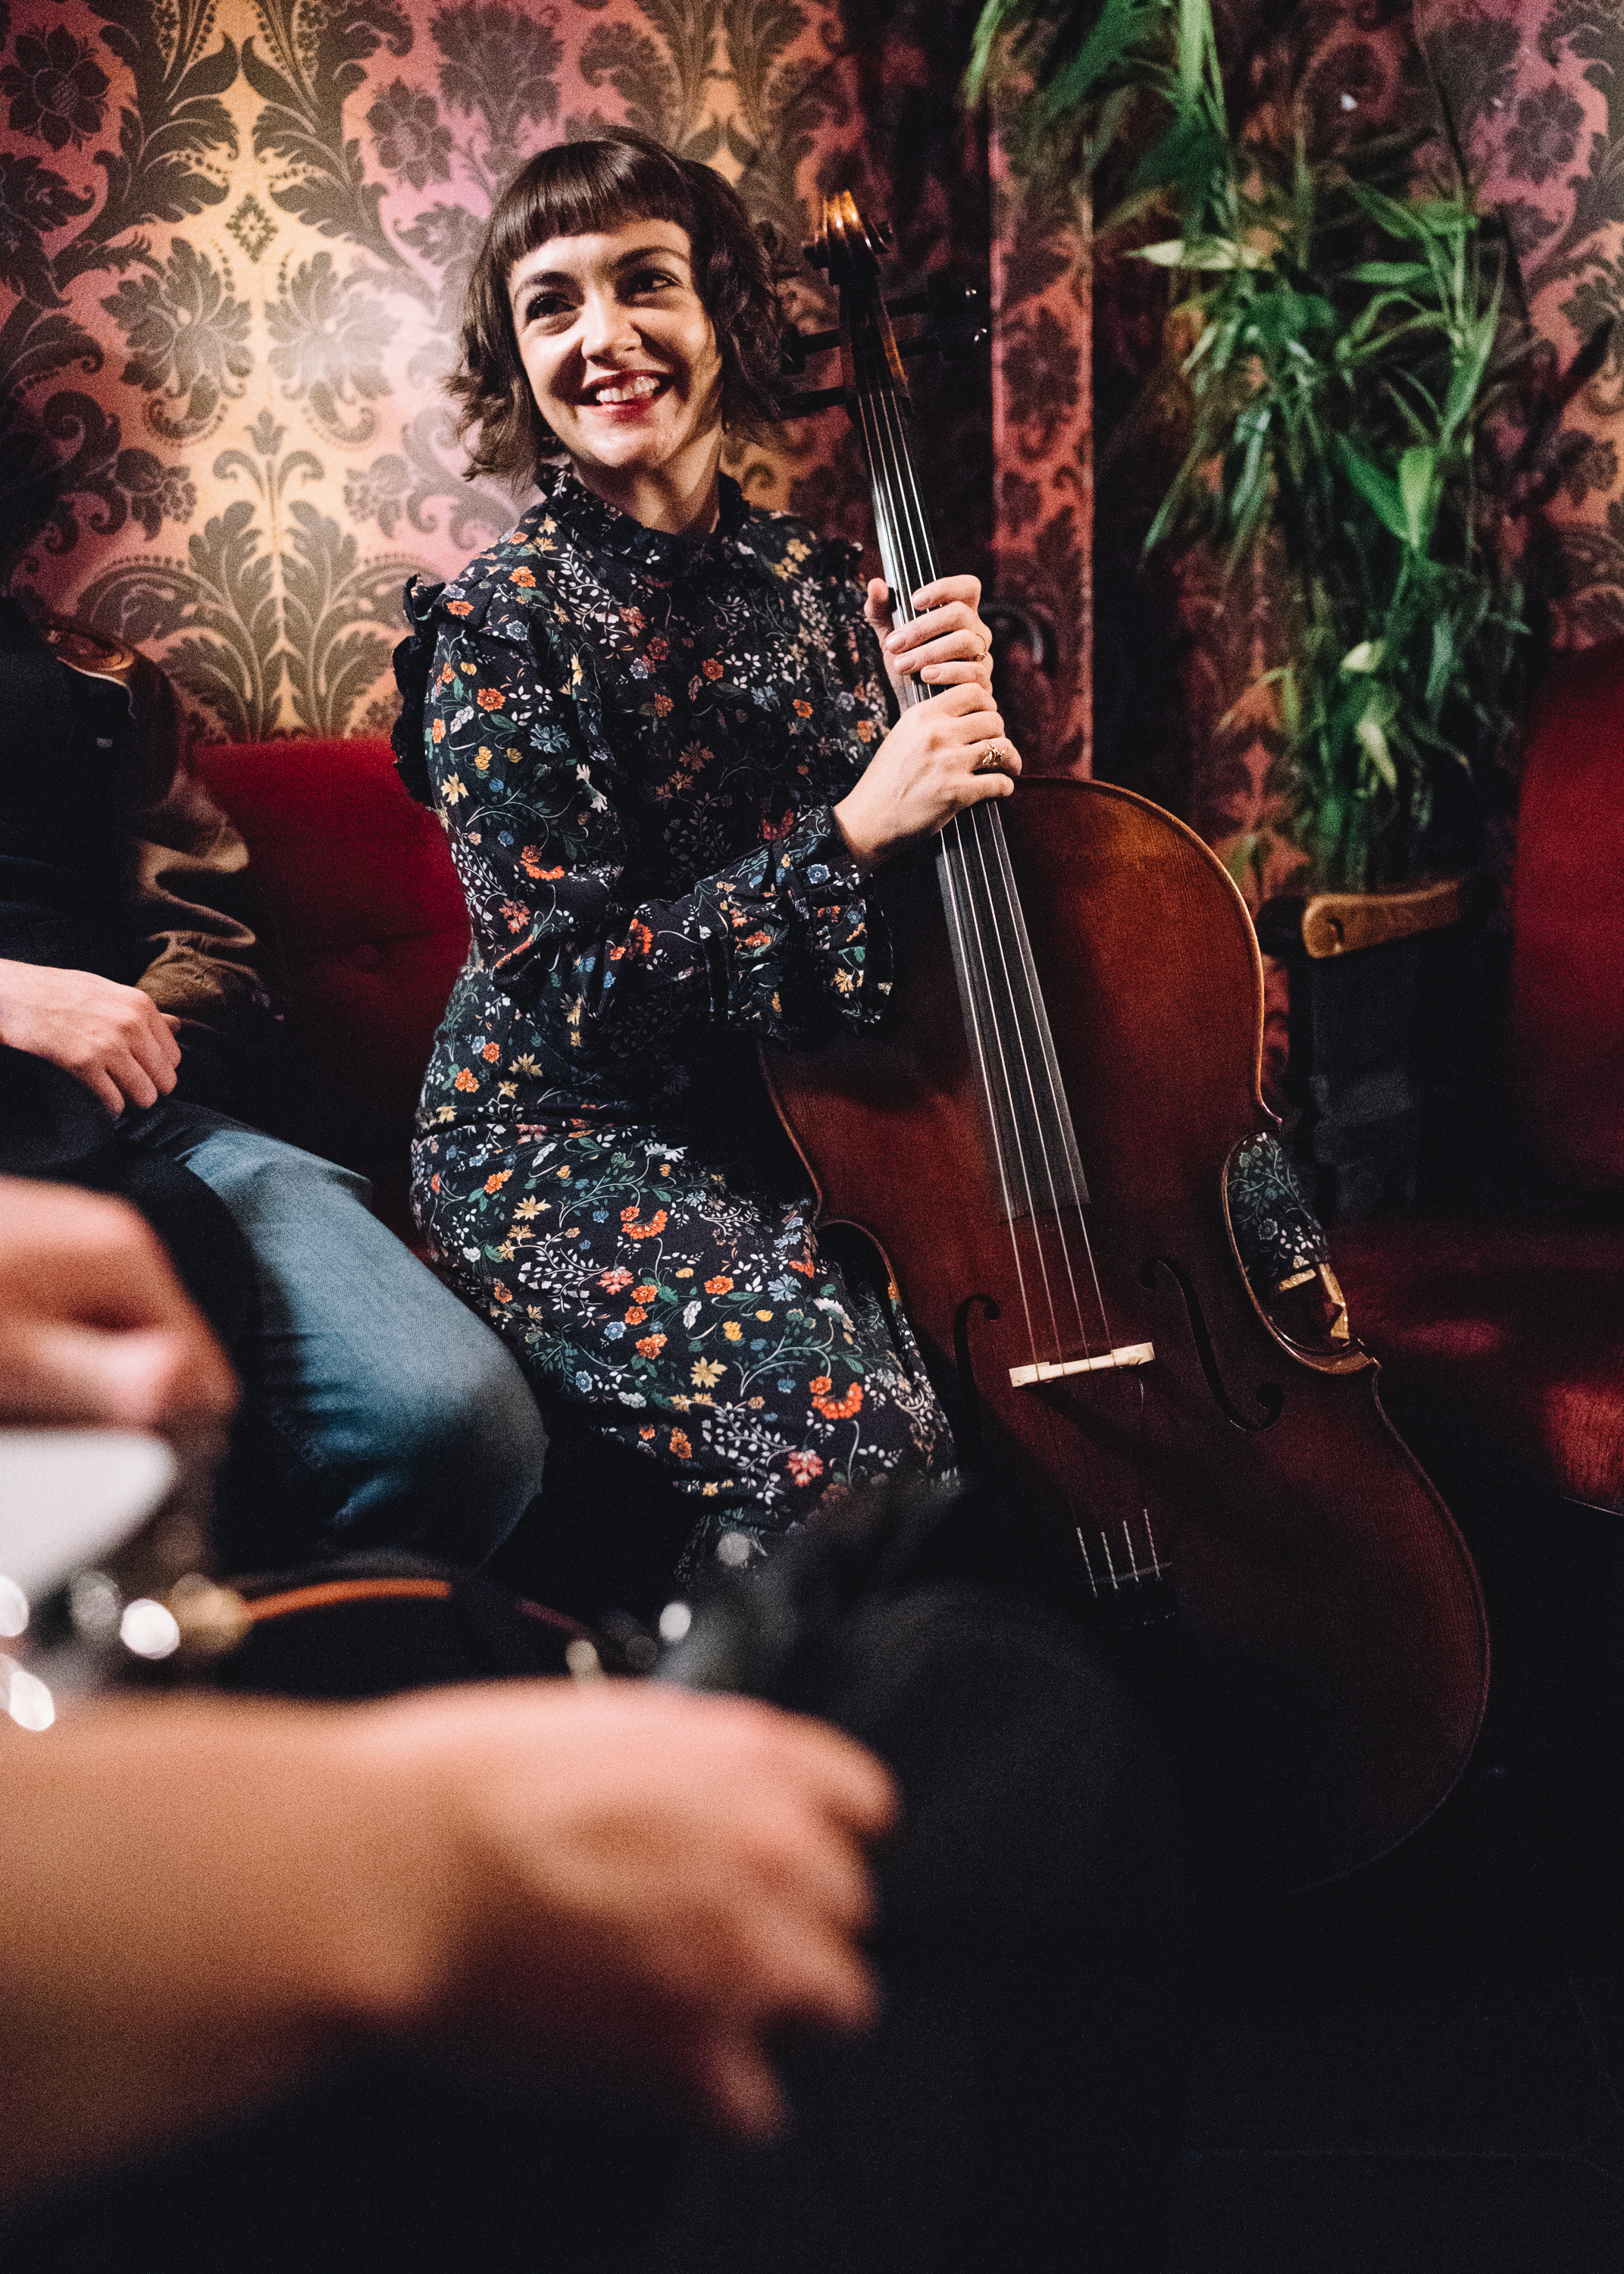 Neyla Pekarek (All photos from AK Photography)